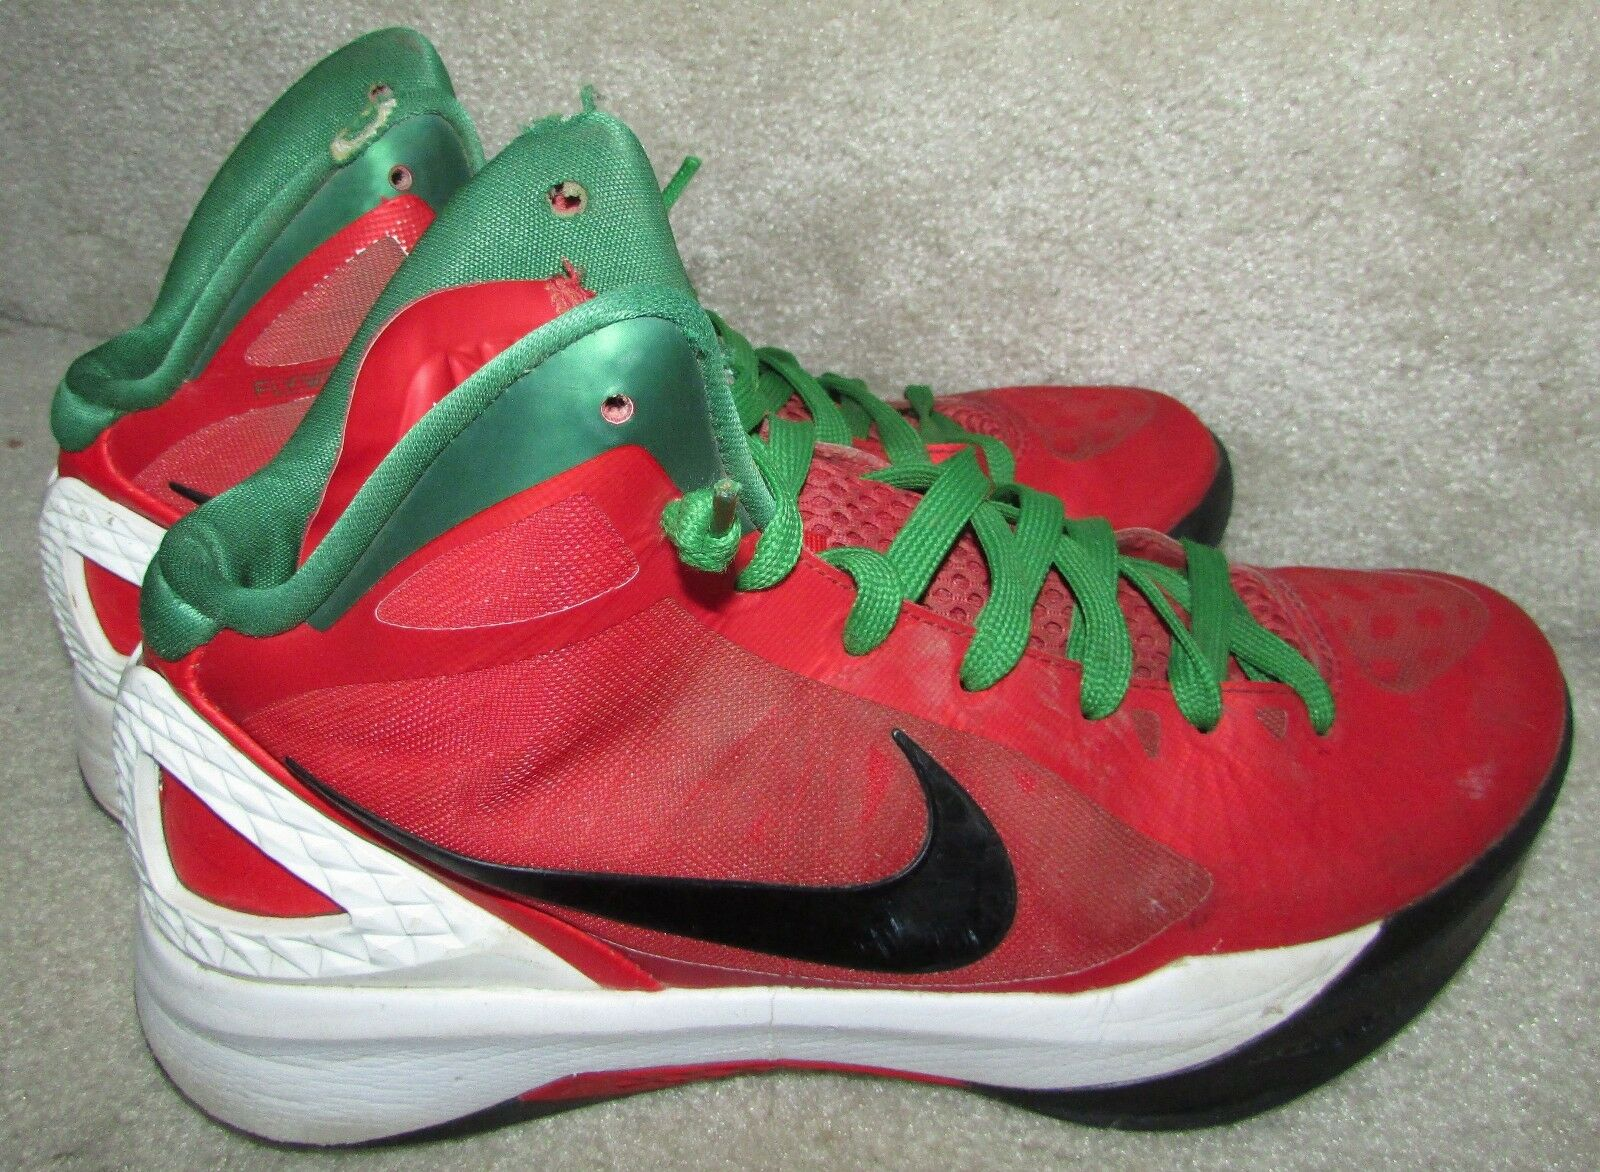 NIKE Zoom Hyperdunk Challenge Red/Black-White-Pine Green 454138-600 Comfortable Cheap and beautiful fashion